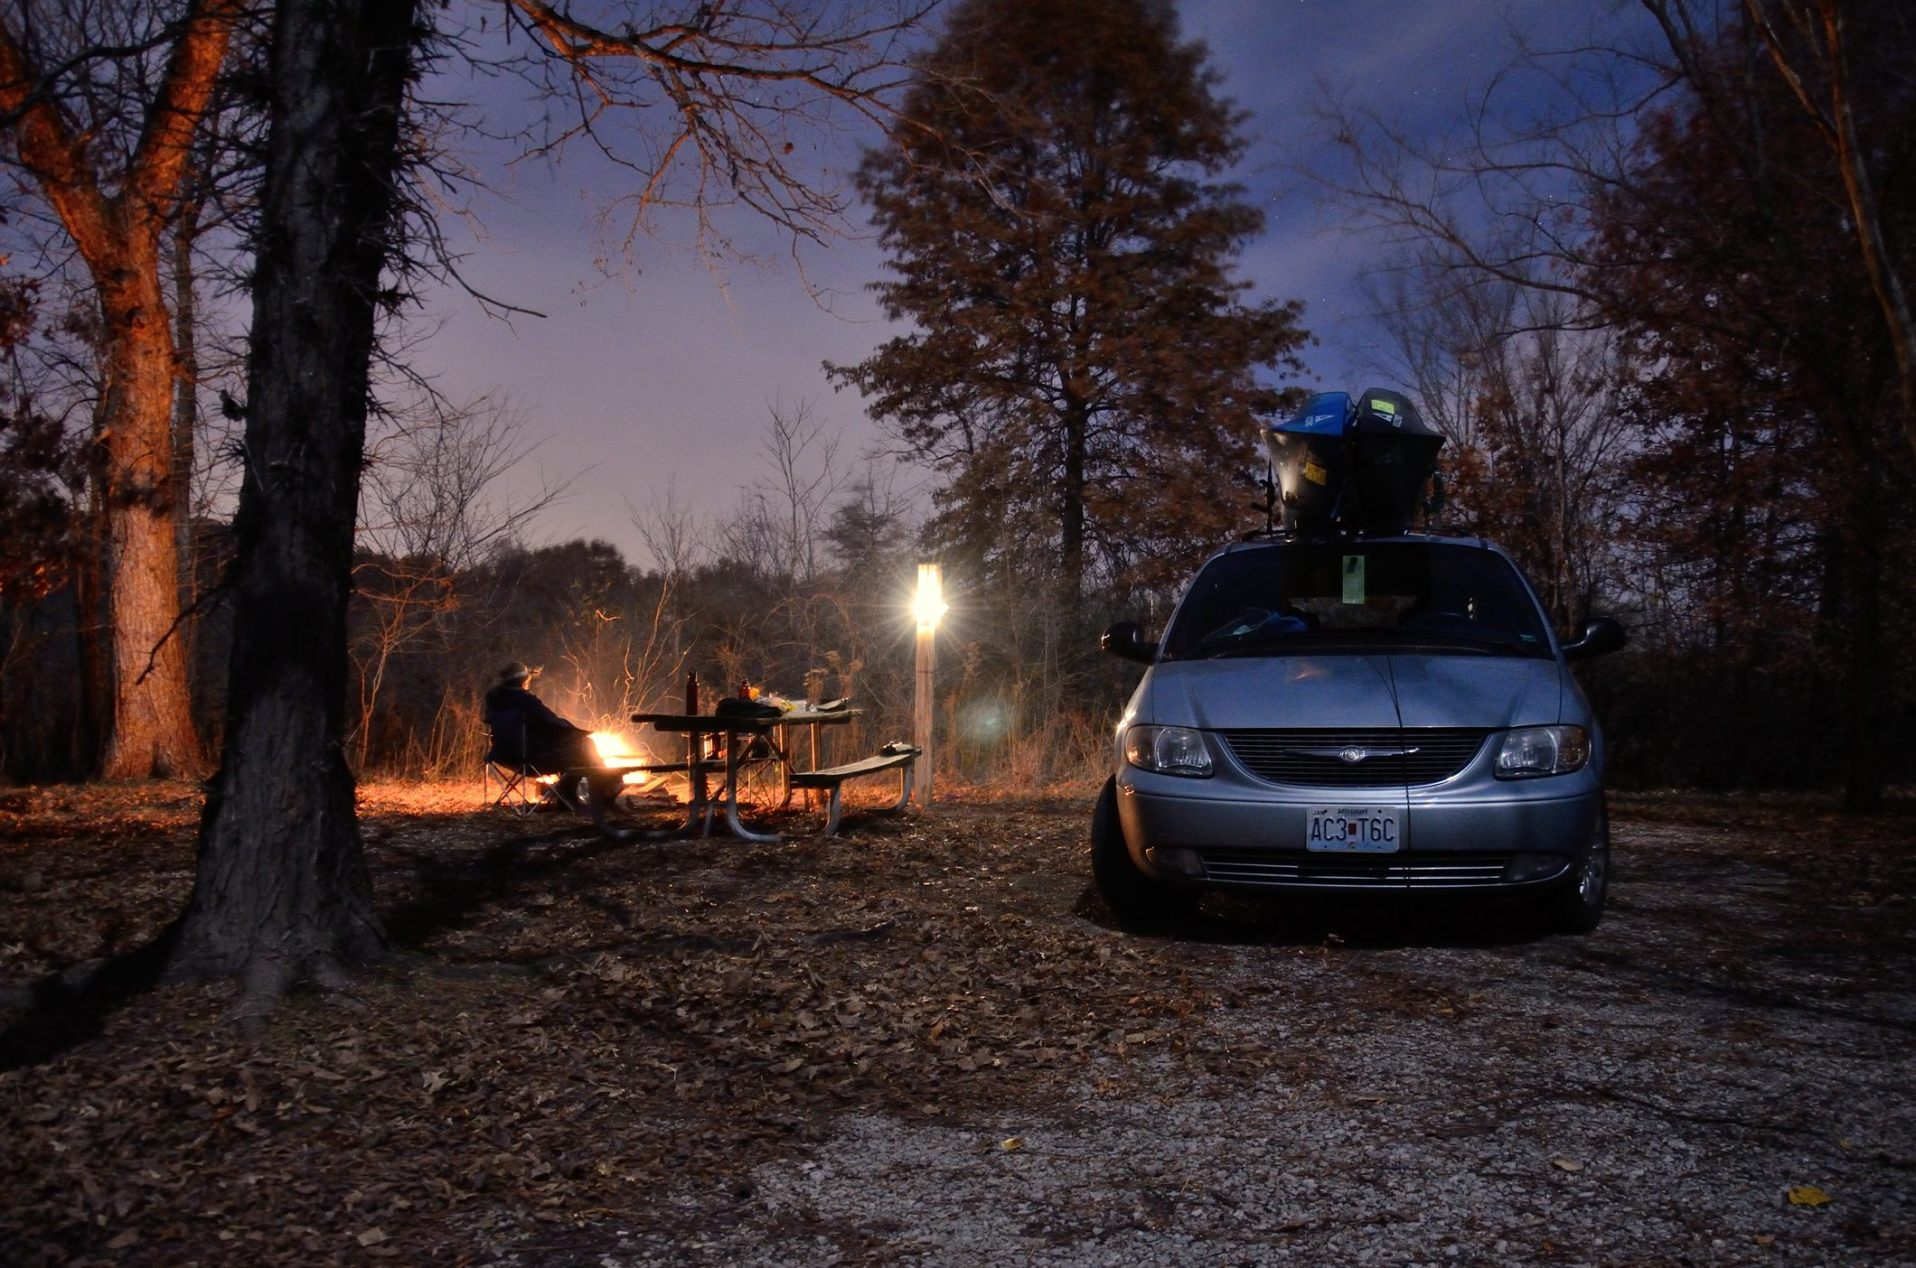 Bucksaw campsite in the moonlight. Copyright © 2011 Gary Allman, all rights reserved.